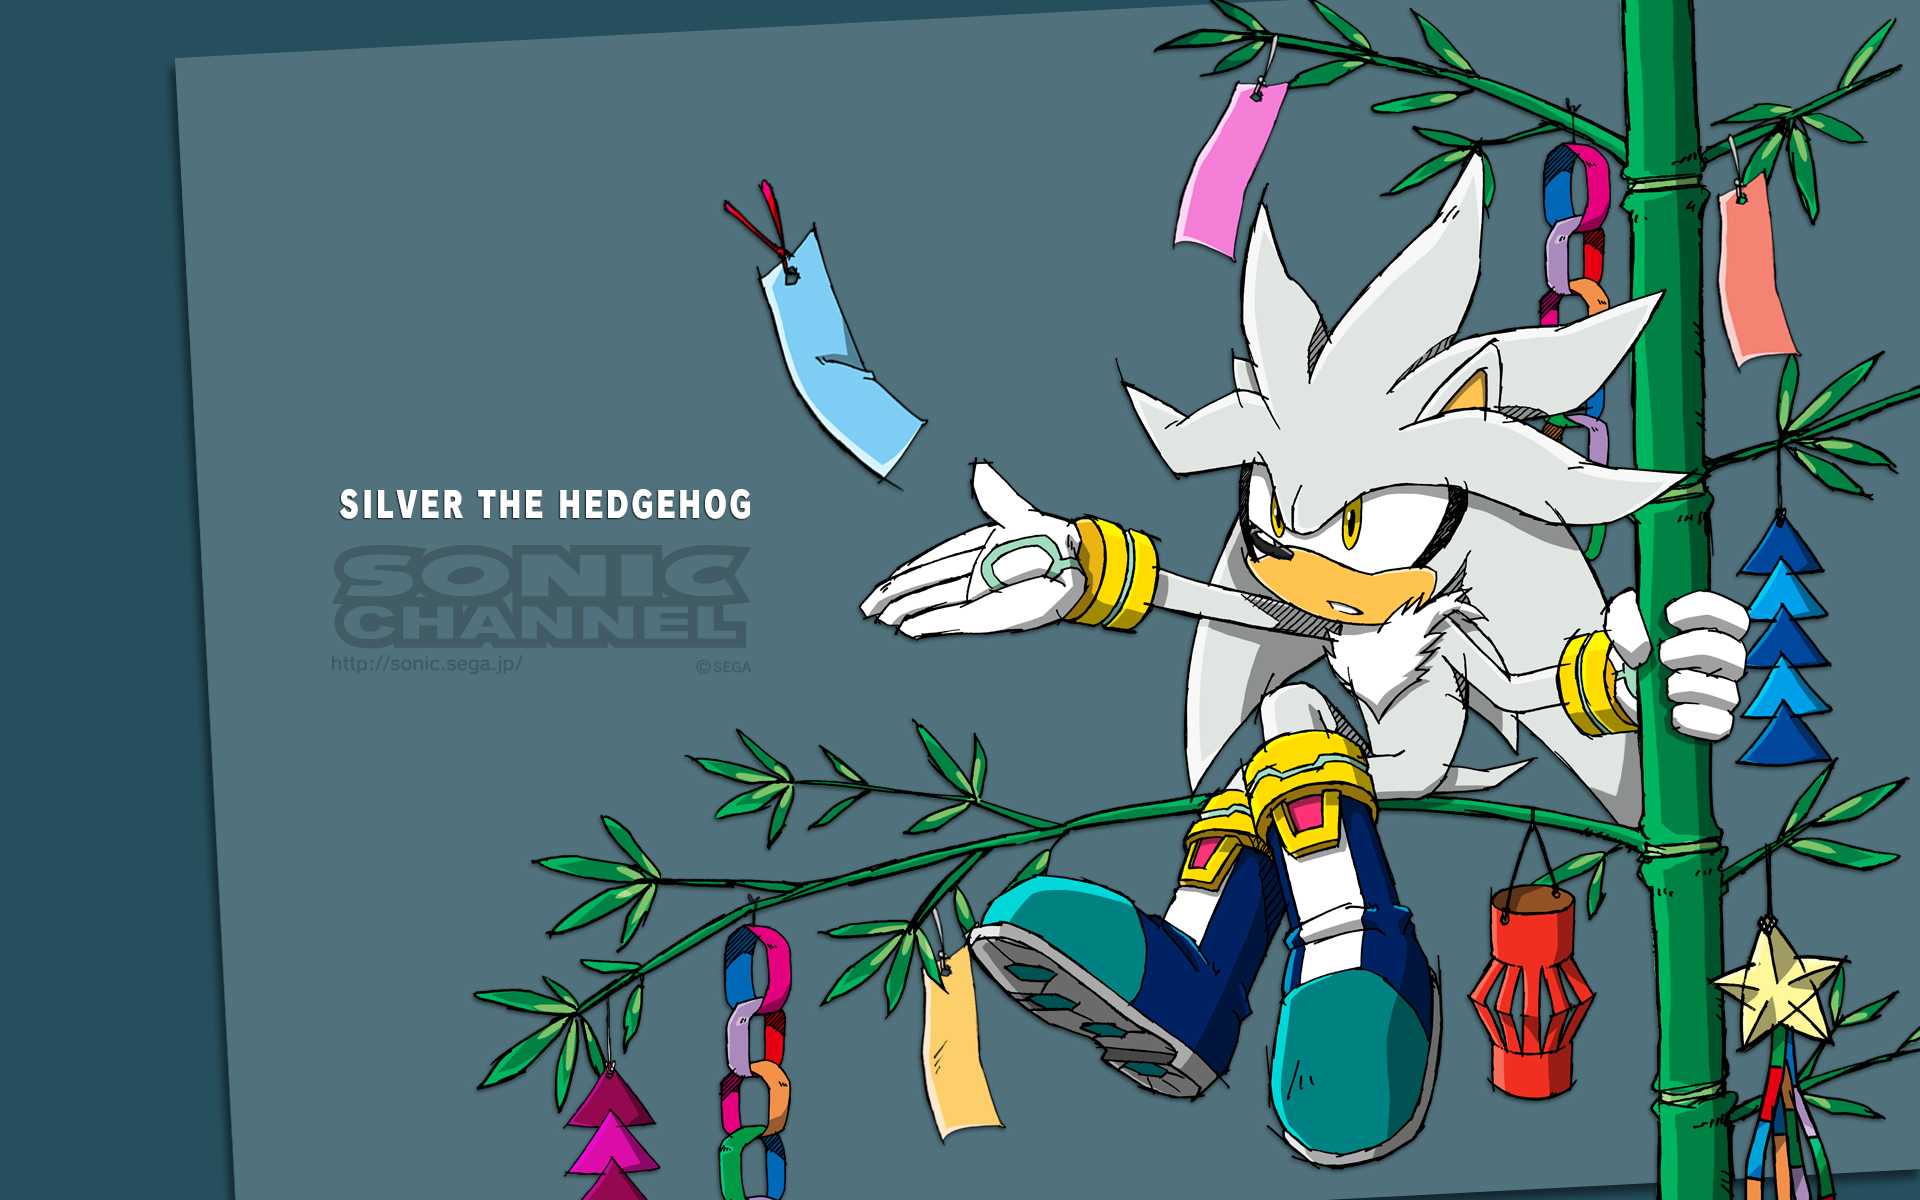 Sonic The Hedgehog 2006 Full HD Wallpaper And Background Image